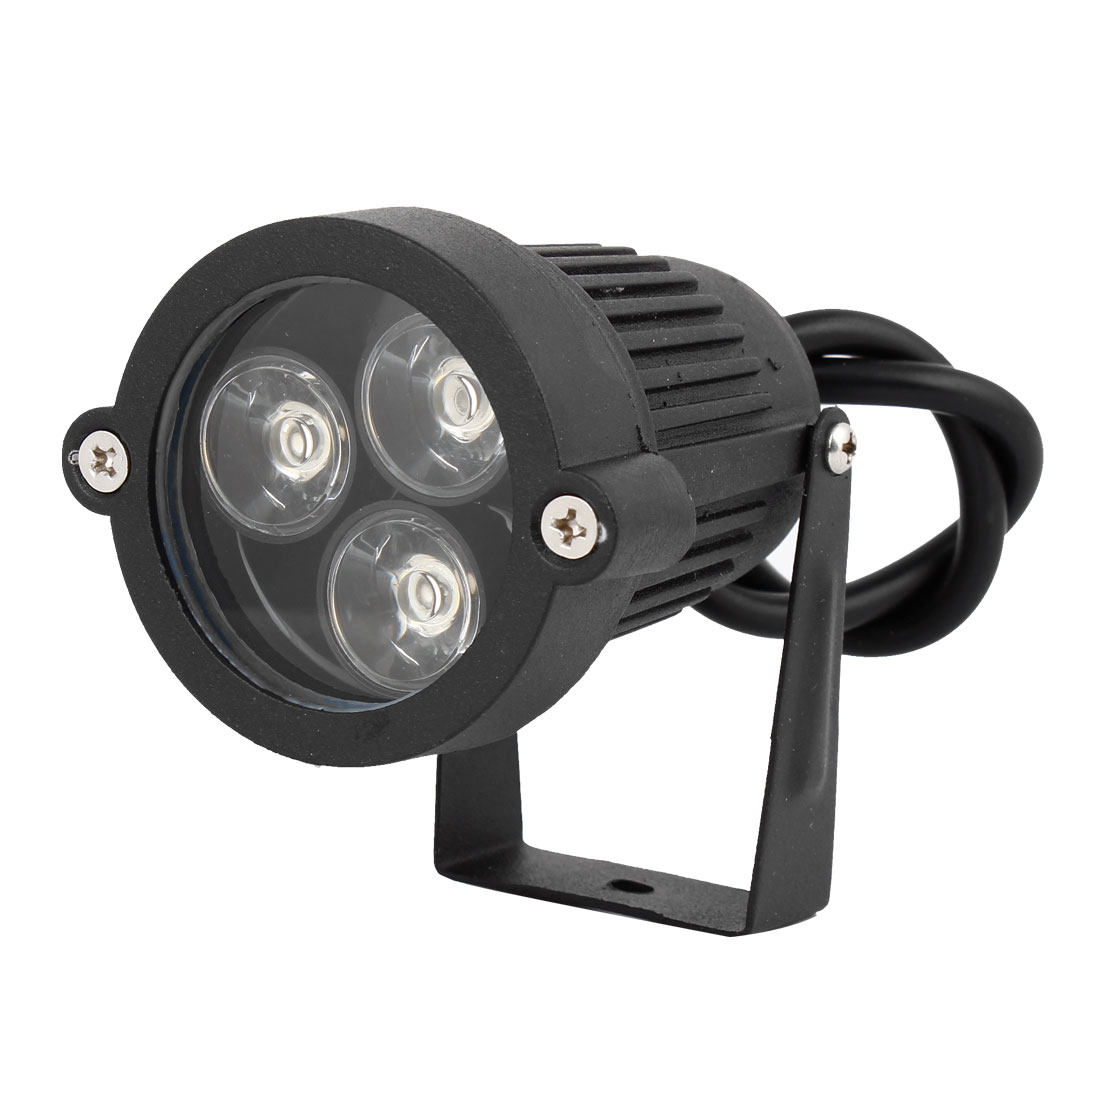 DC 12V 6W 300-330LM Green LED Light Lawn Garden Spotlight Lamp Bulb